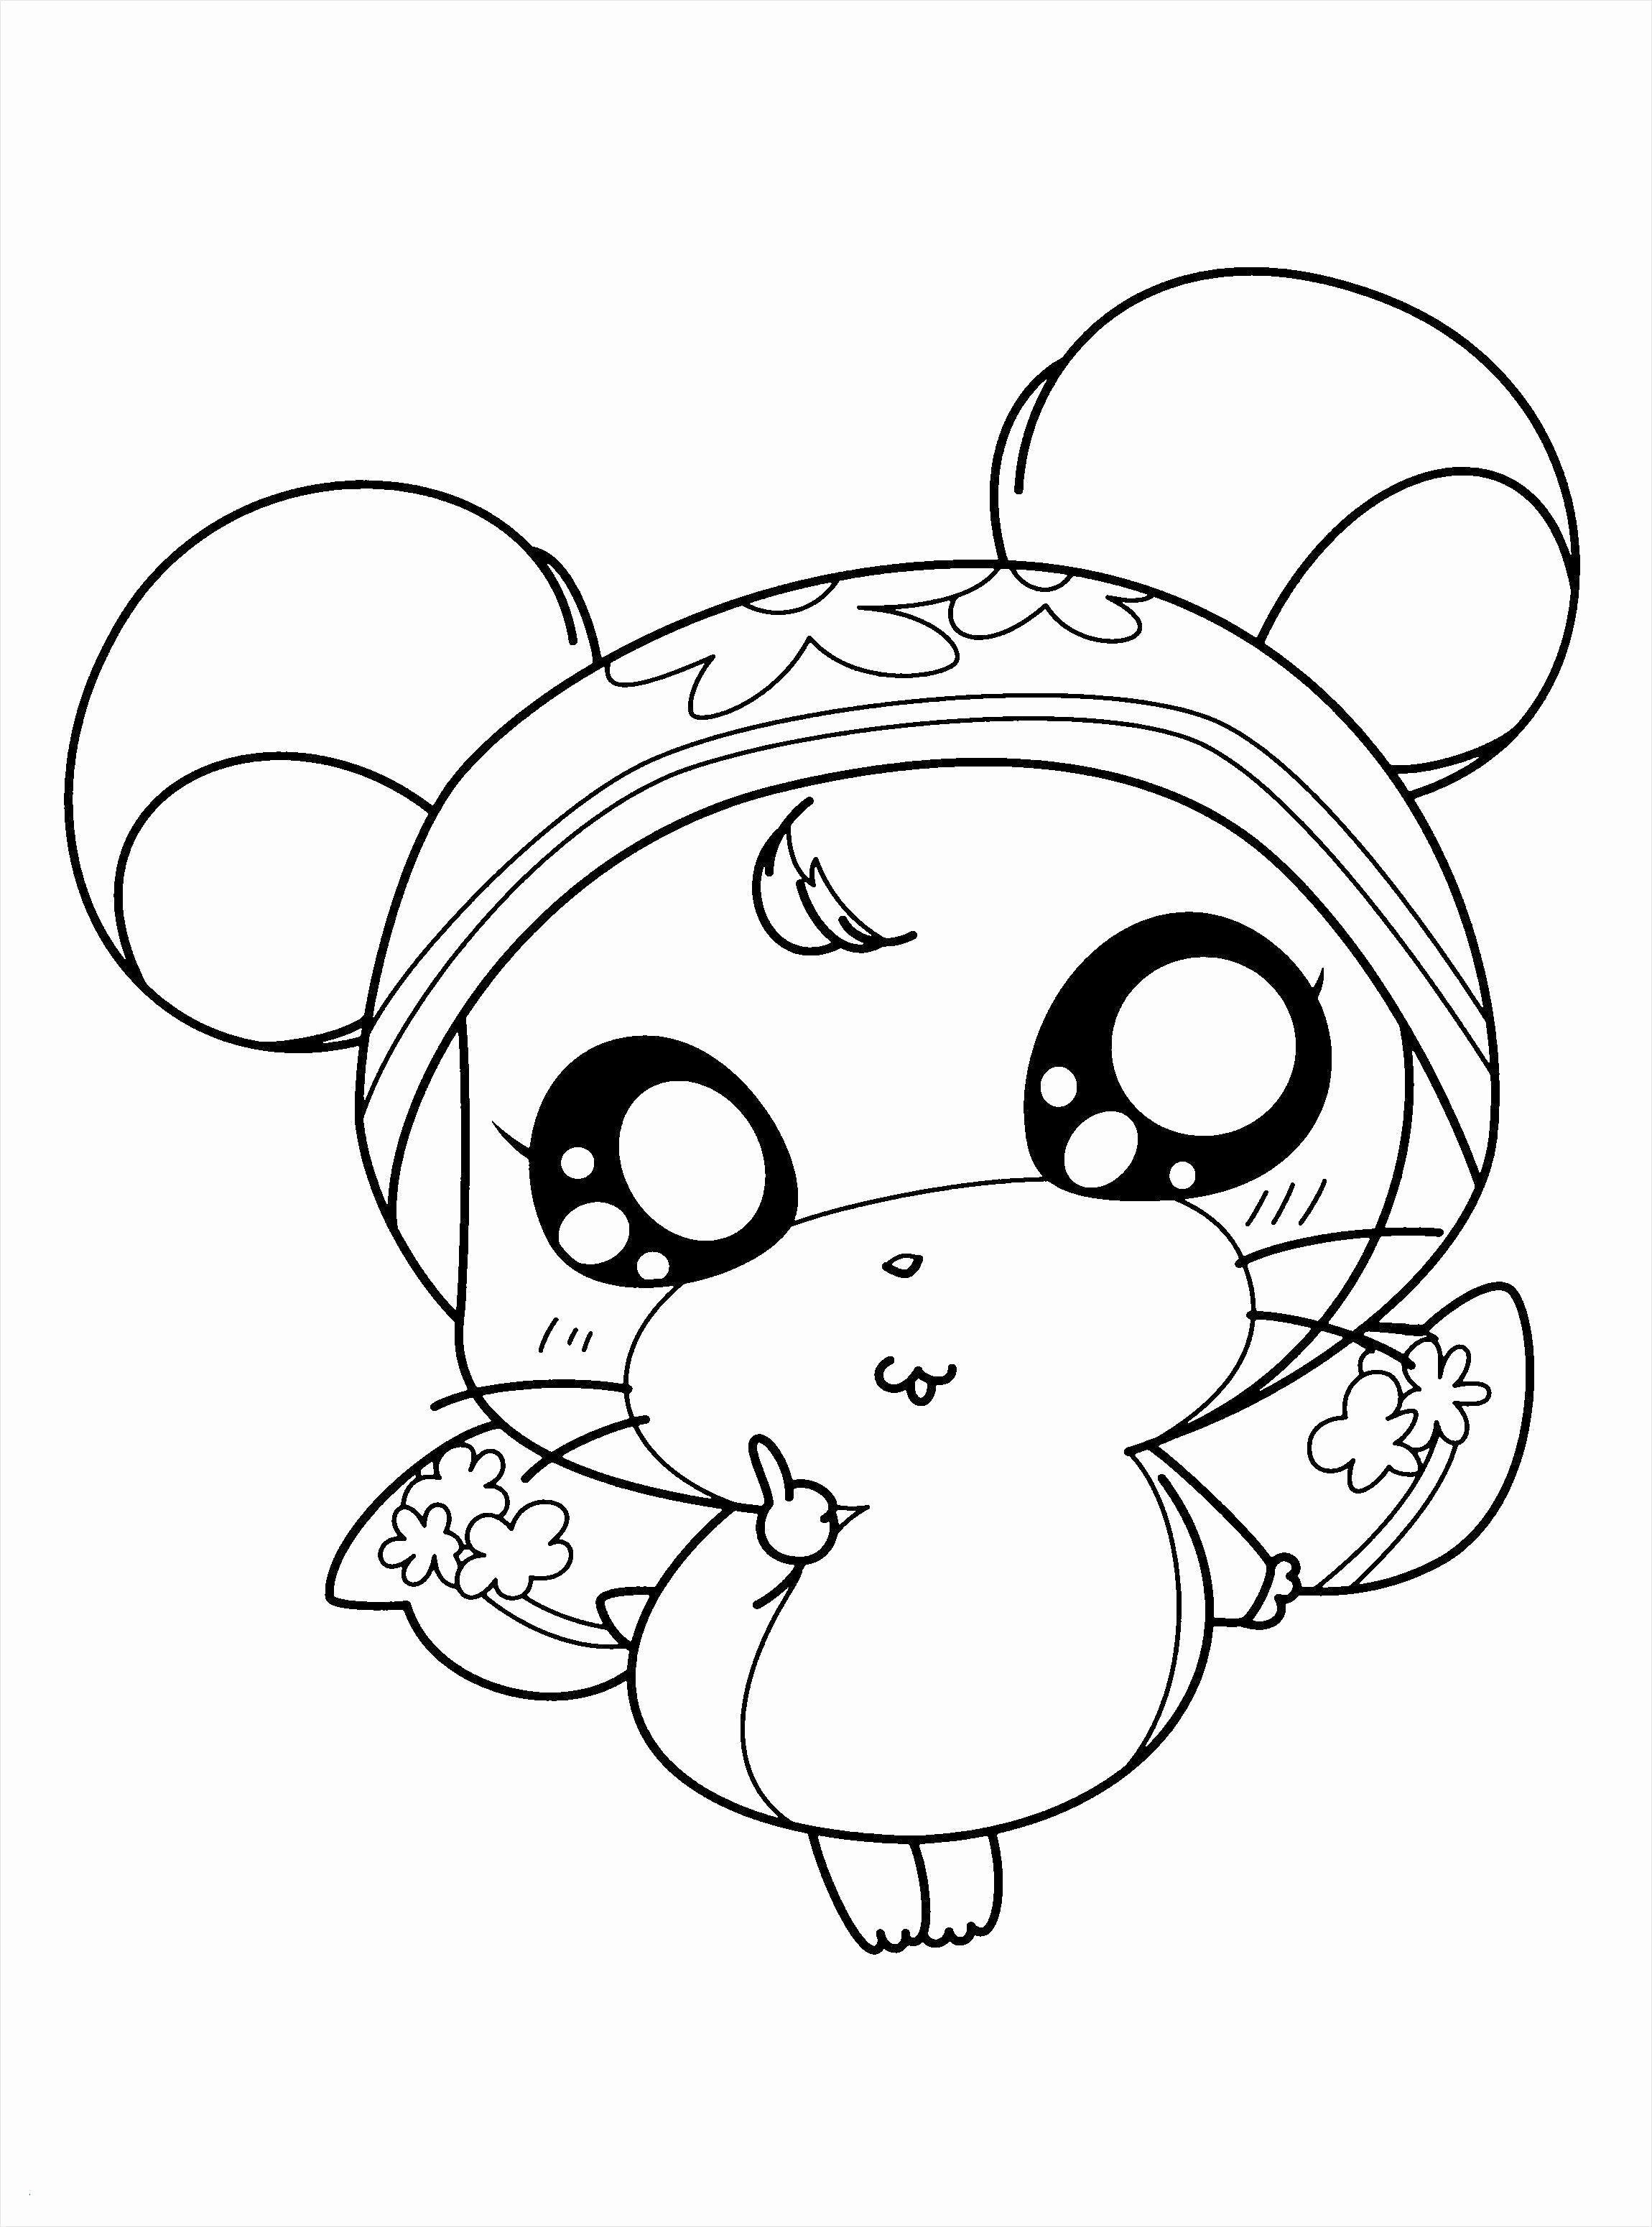 cute zoo coloring pages cute giraffe coloring page giraffe coloring pages zoo cute pages zoo coloring